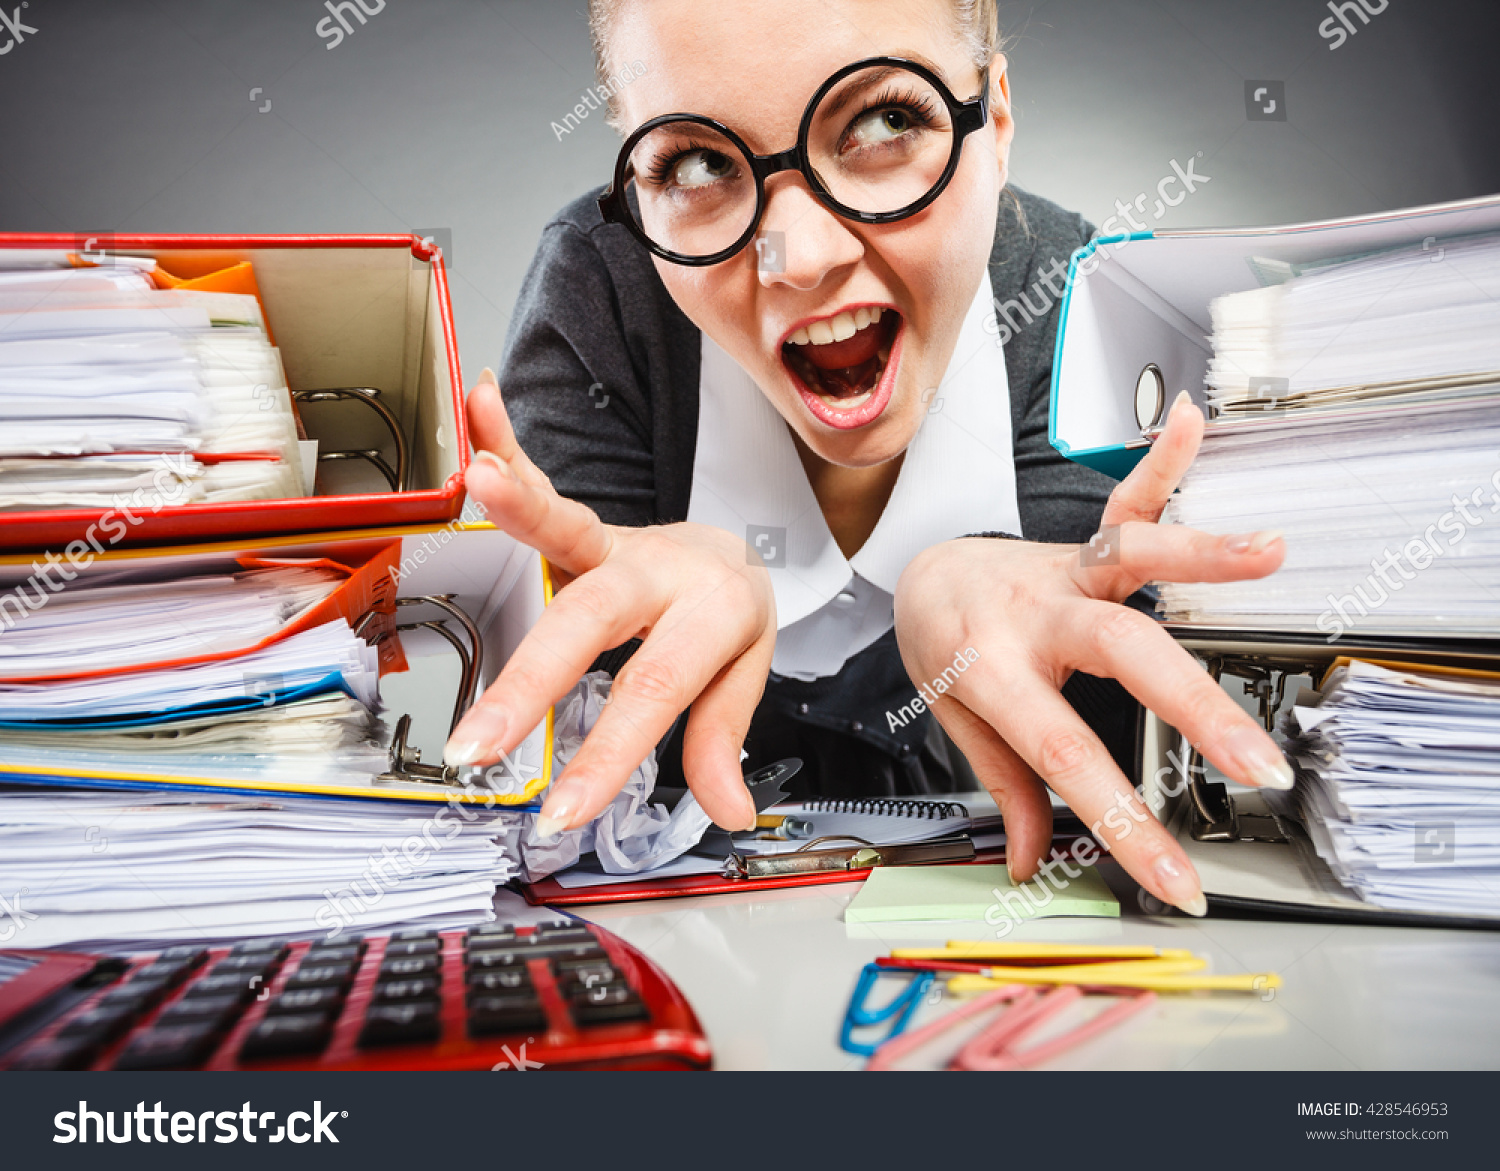 workaholism mental insanity weird job work stock photo  workaholism mental insanity weird job work company concept insane office w at work mad